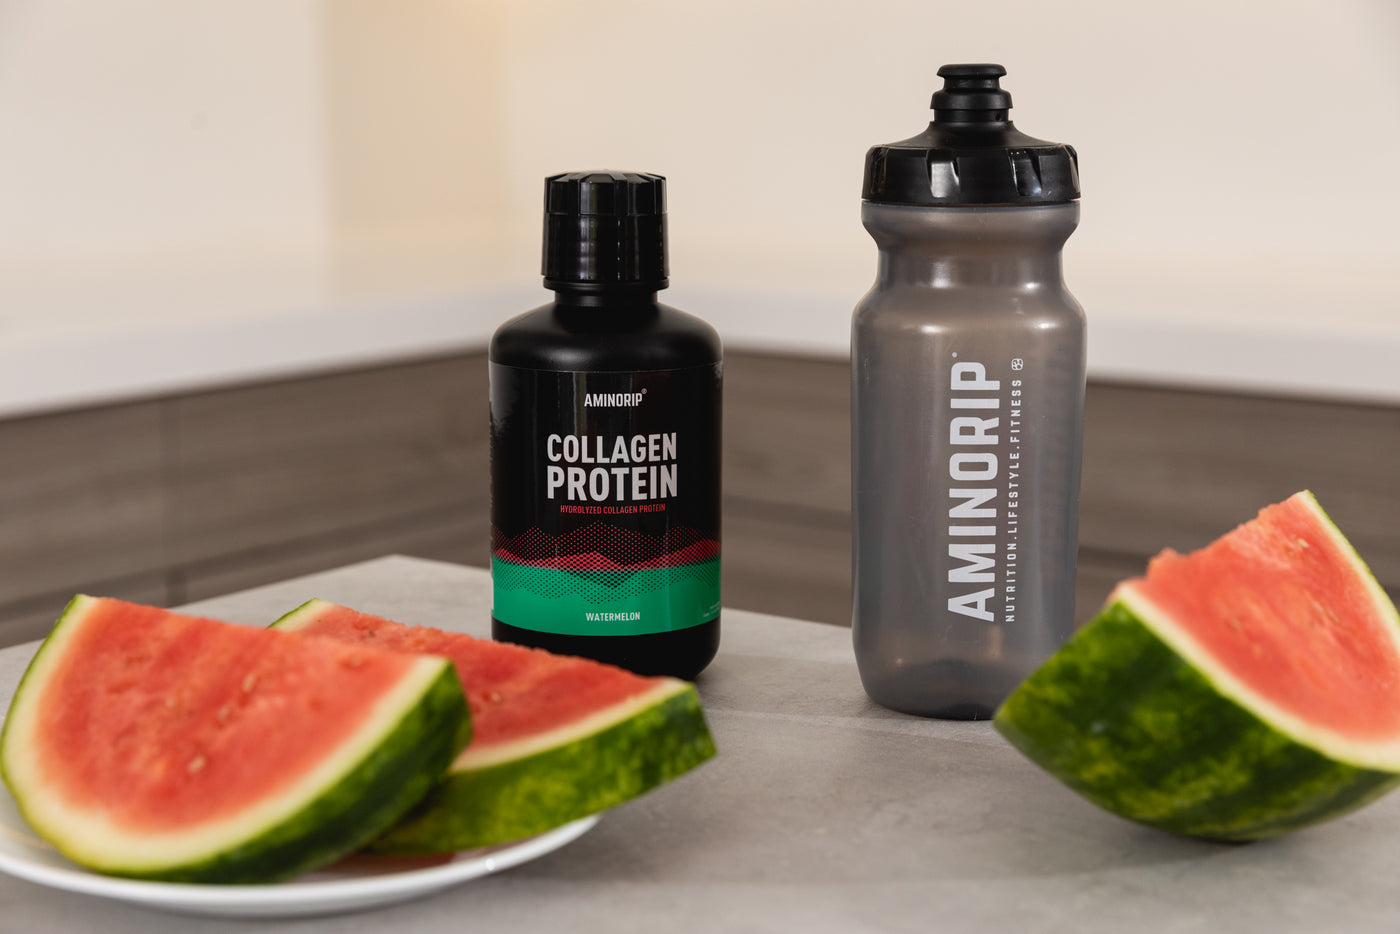 Nutritionists Review: Collagen Protein